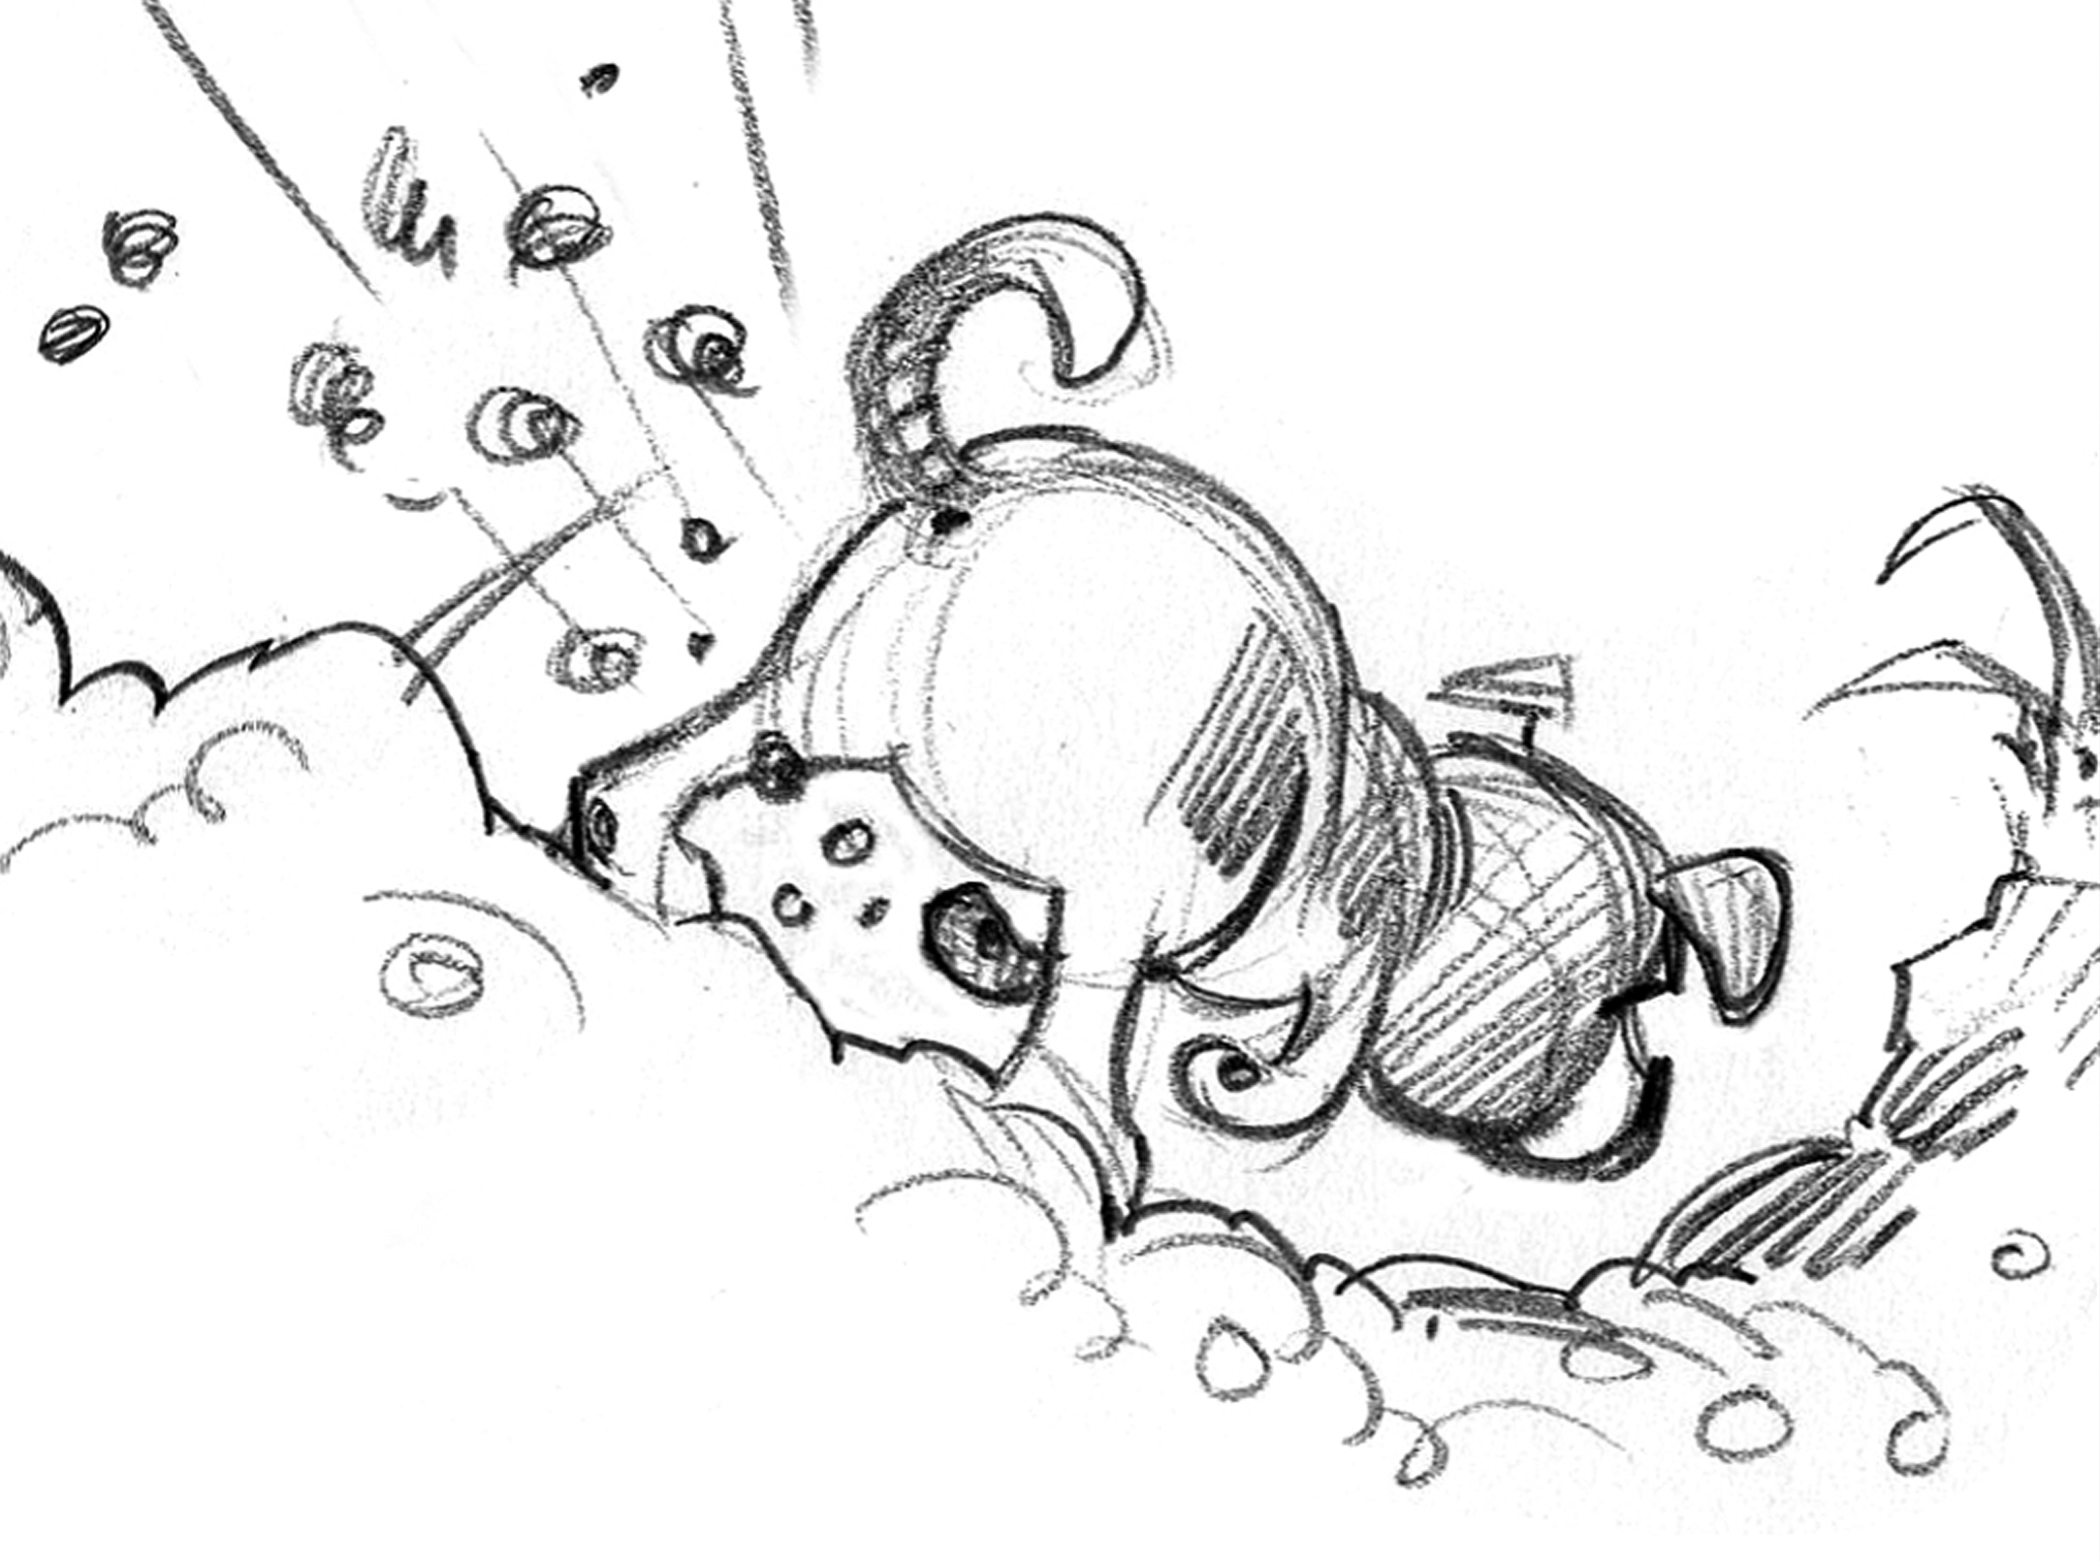 Tiny, also sketched with detail; my usual style.